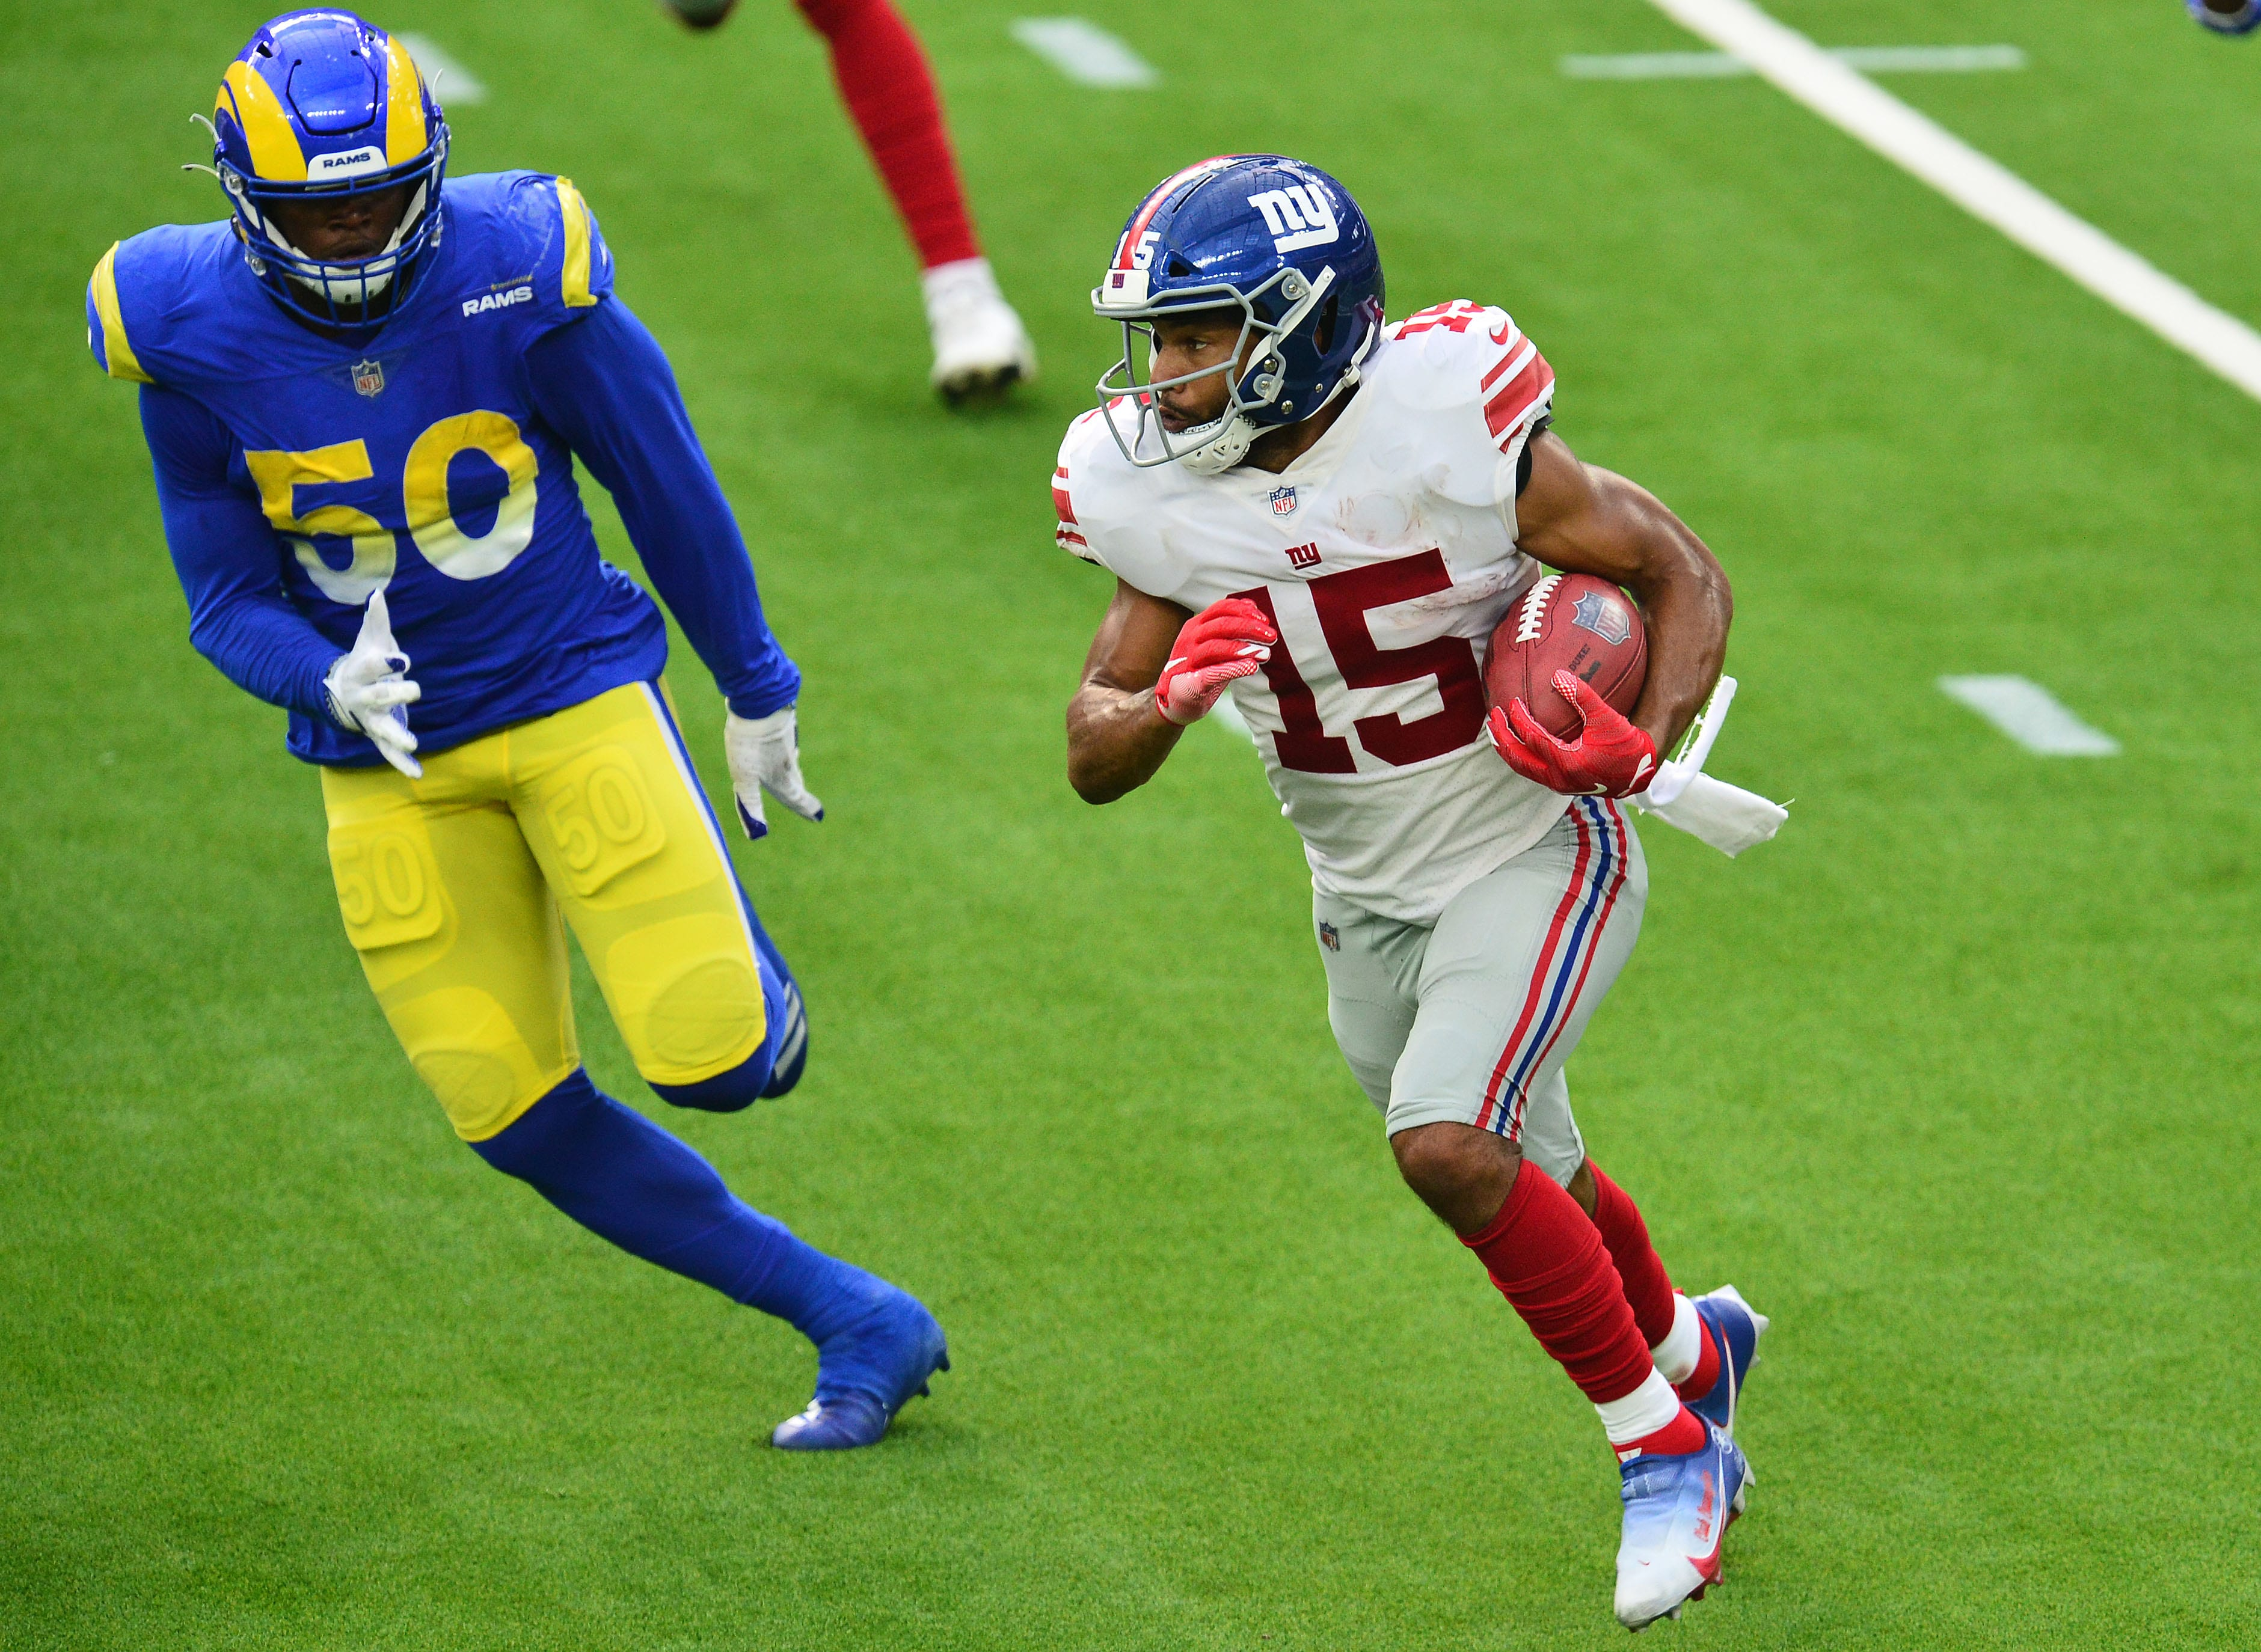 New York Giants, Golden Tate